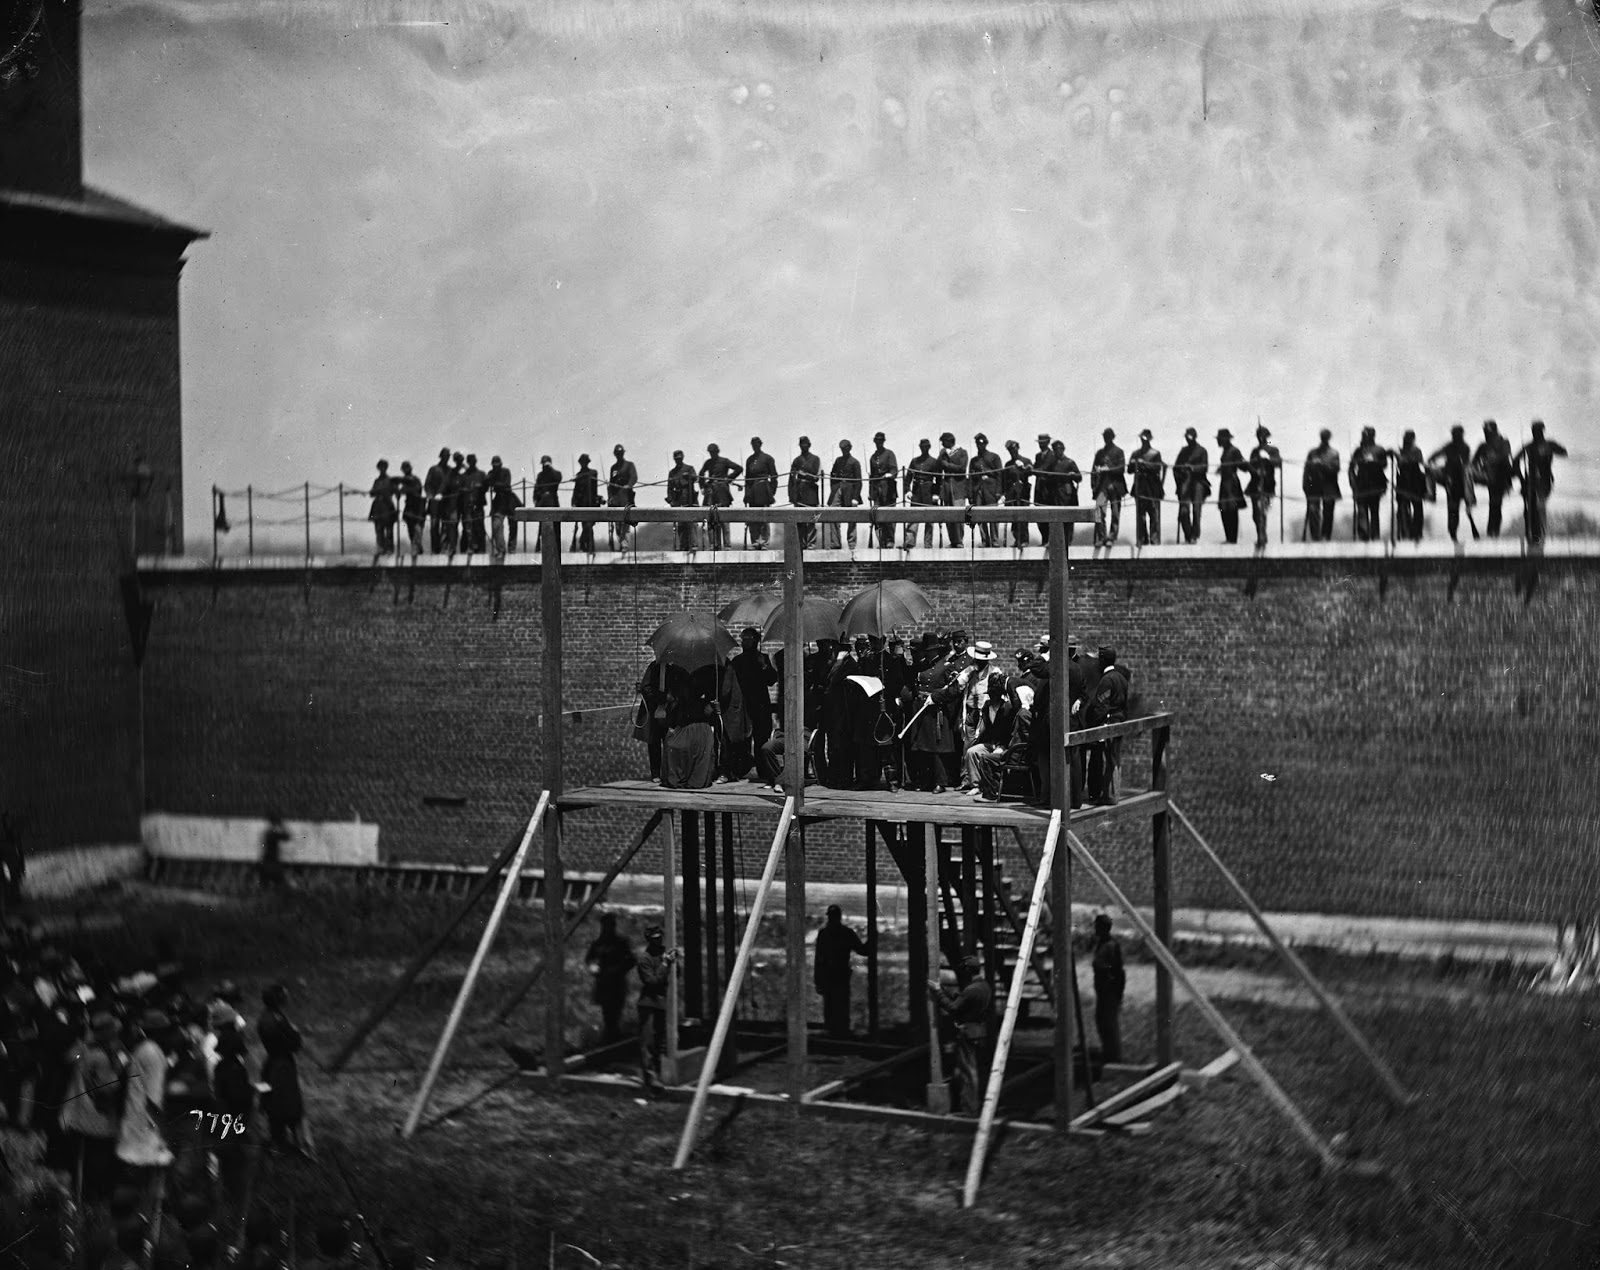 Construction of the gallows for the hanging of the conspirators began immediately on July 5 after the execution order was signed.